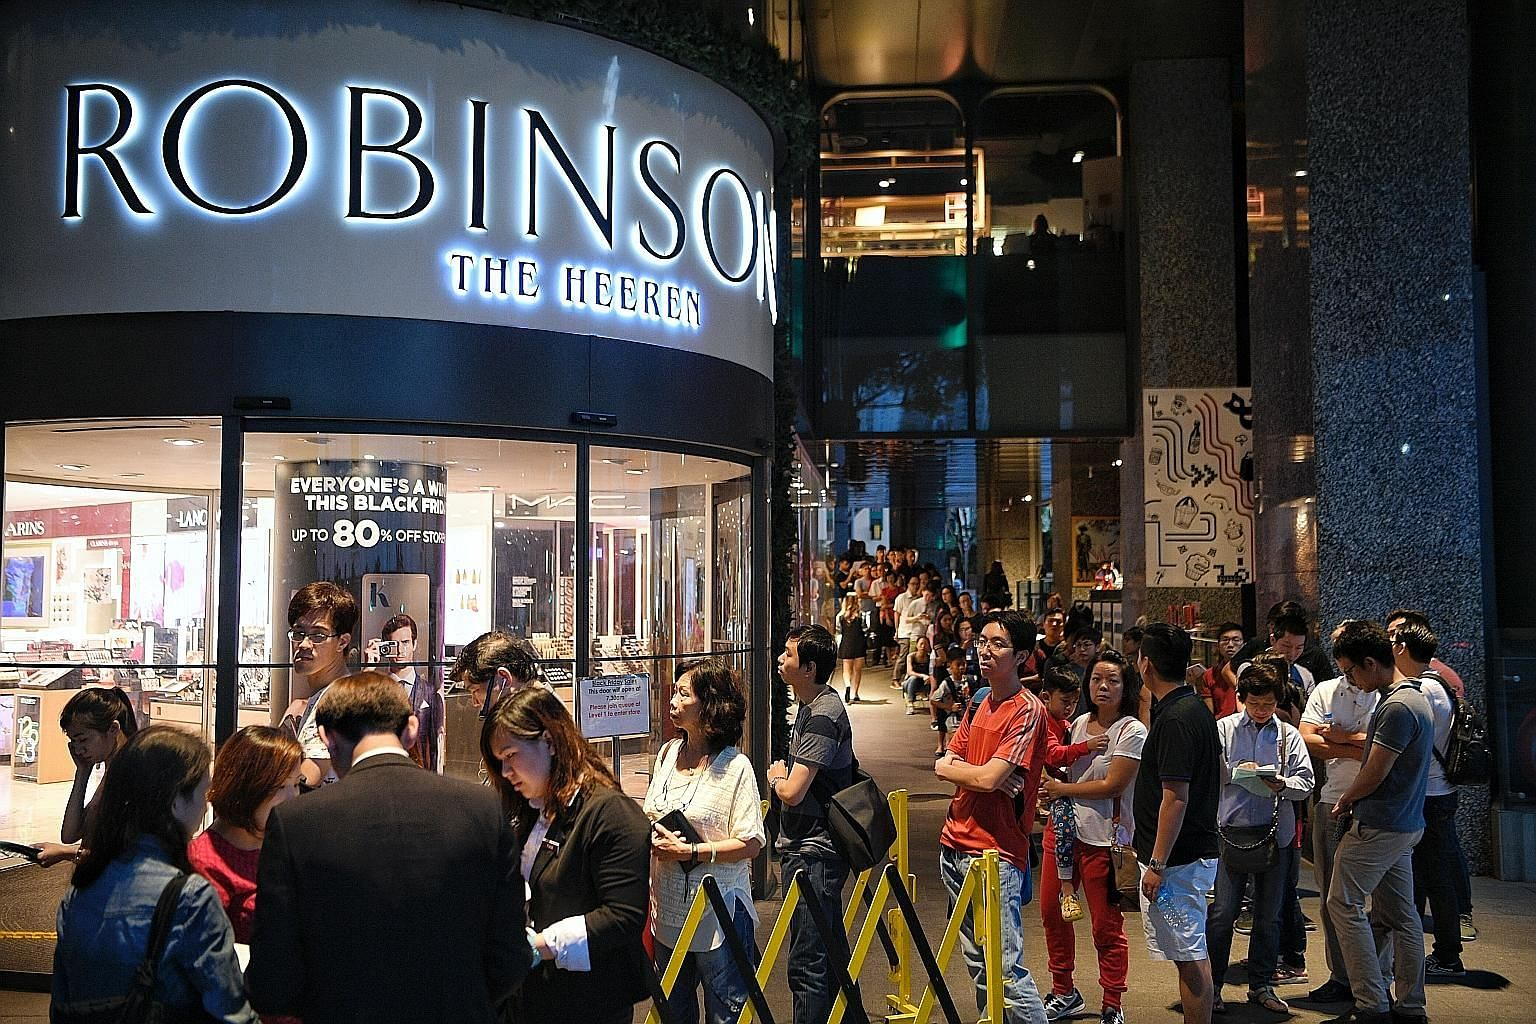 A long queue of people waiting for an Orchard Road department store to open for a major sale. Sales are enticing and attract lots of shoppers because things are generally cheaper. But shoppers should ask themselves whether they really need those prod